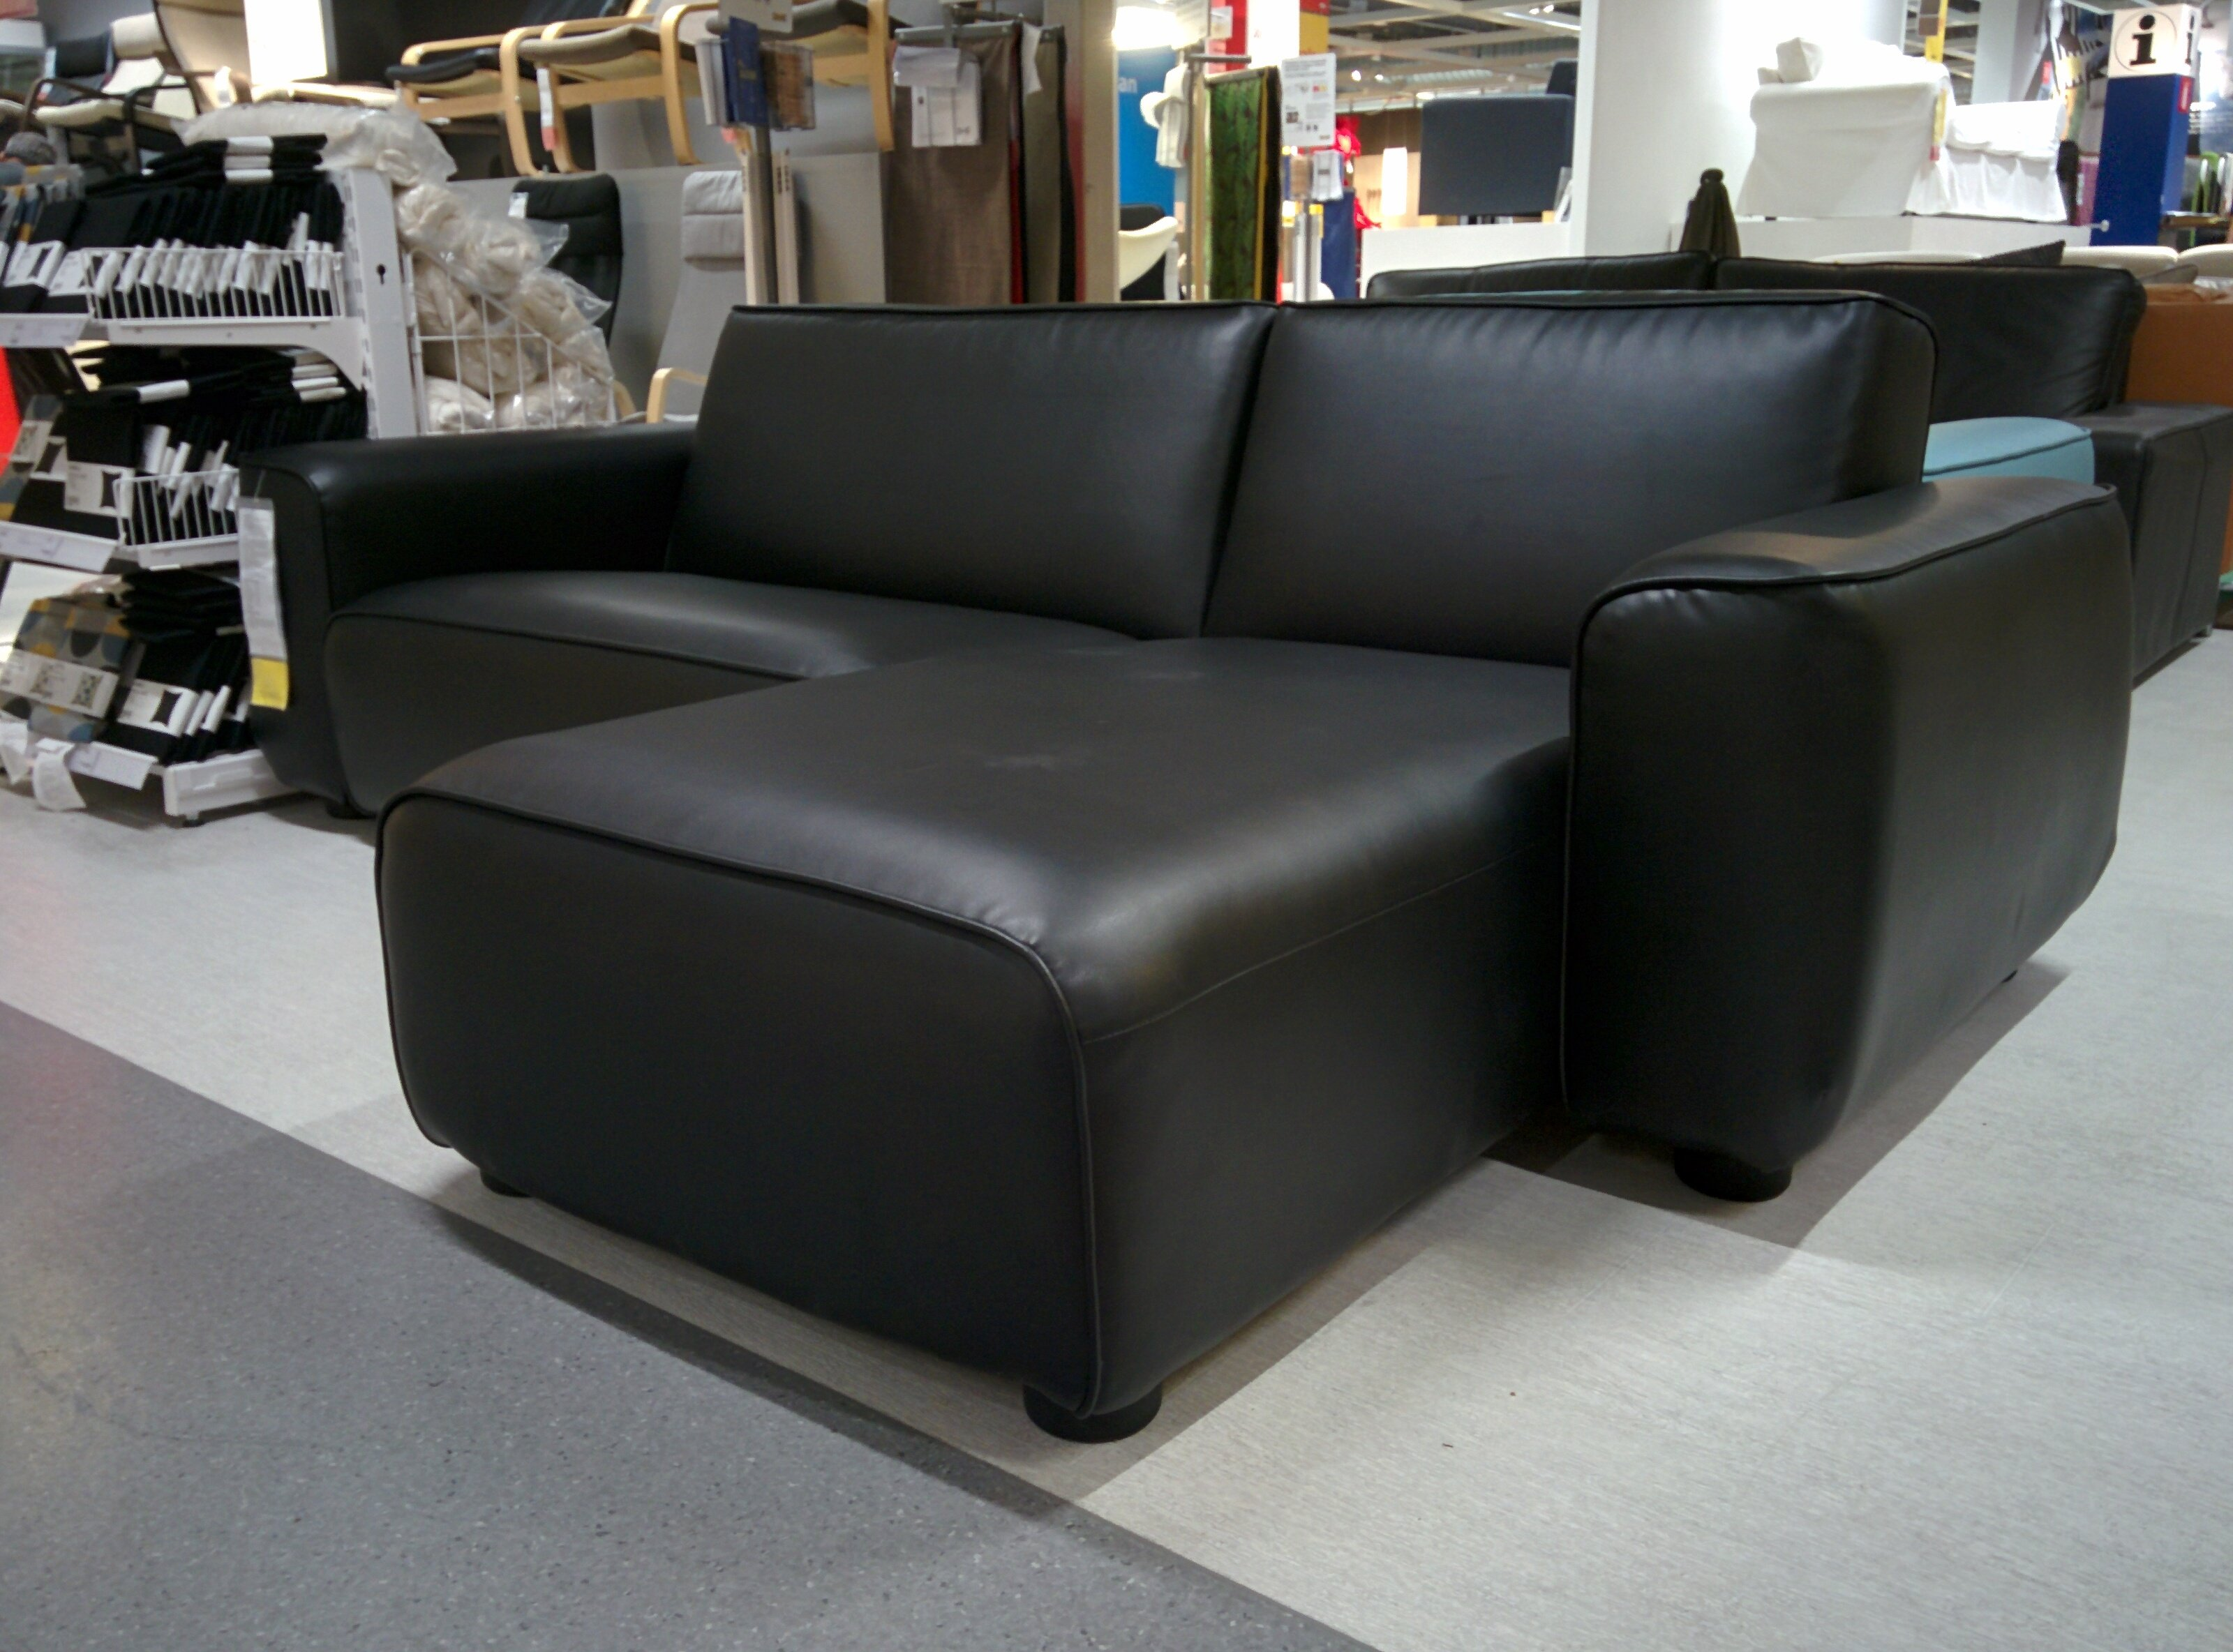 the dagarn ikea sofa review. Black Bedroom Furniture Sets. Home Design Ideas